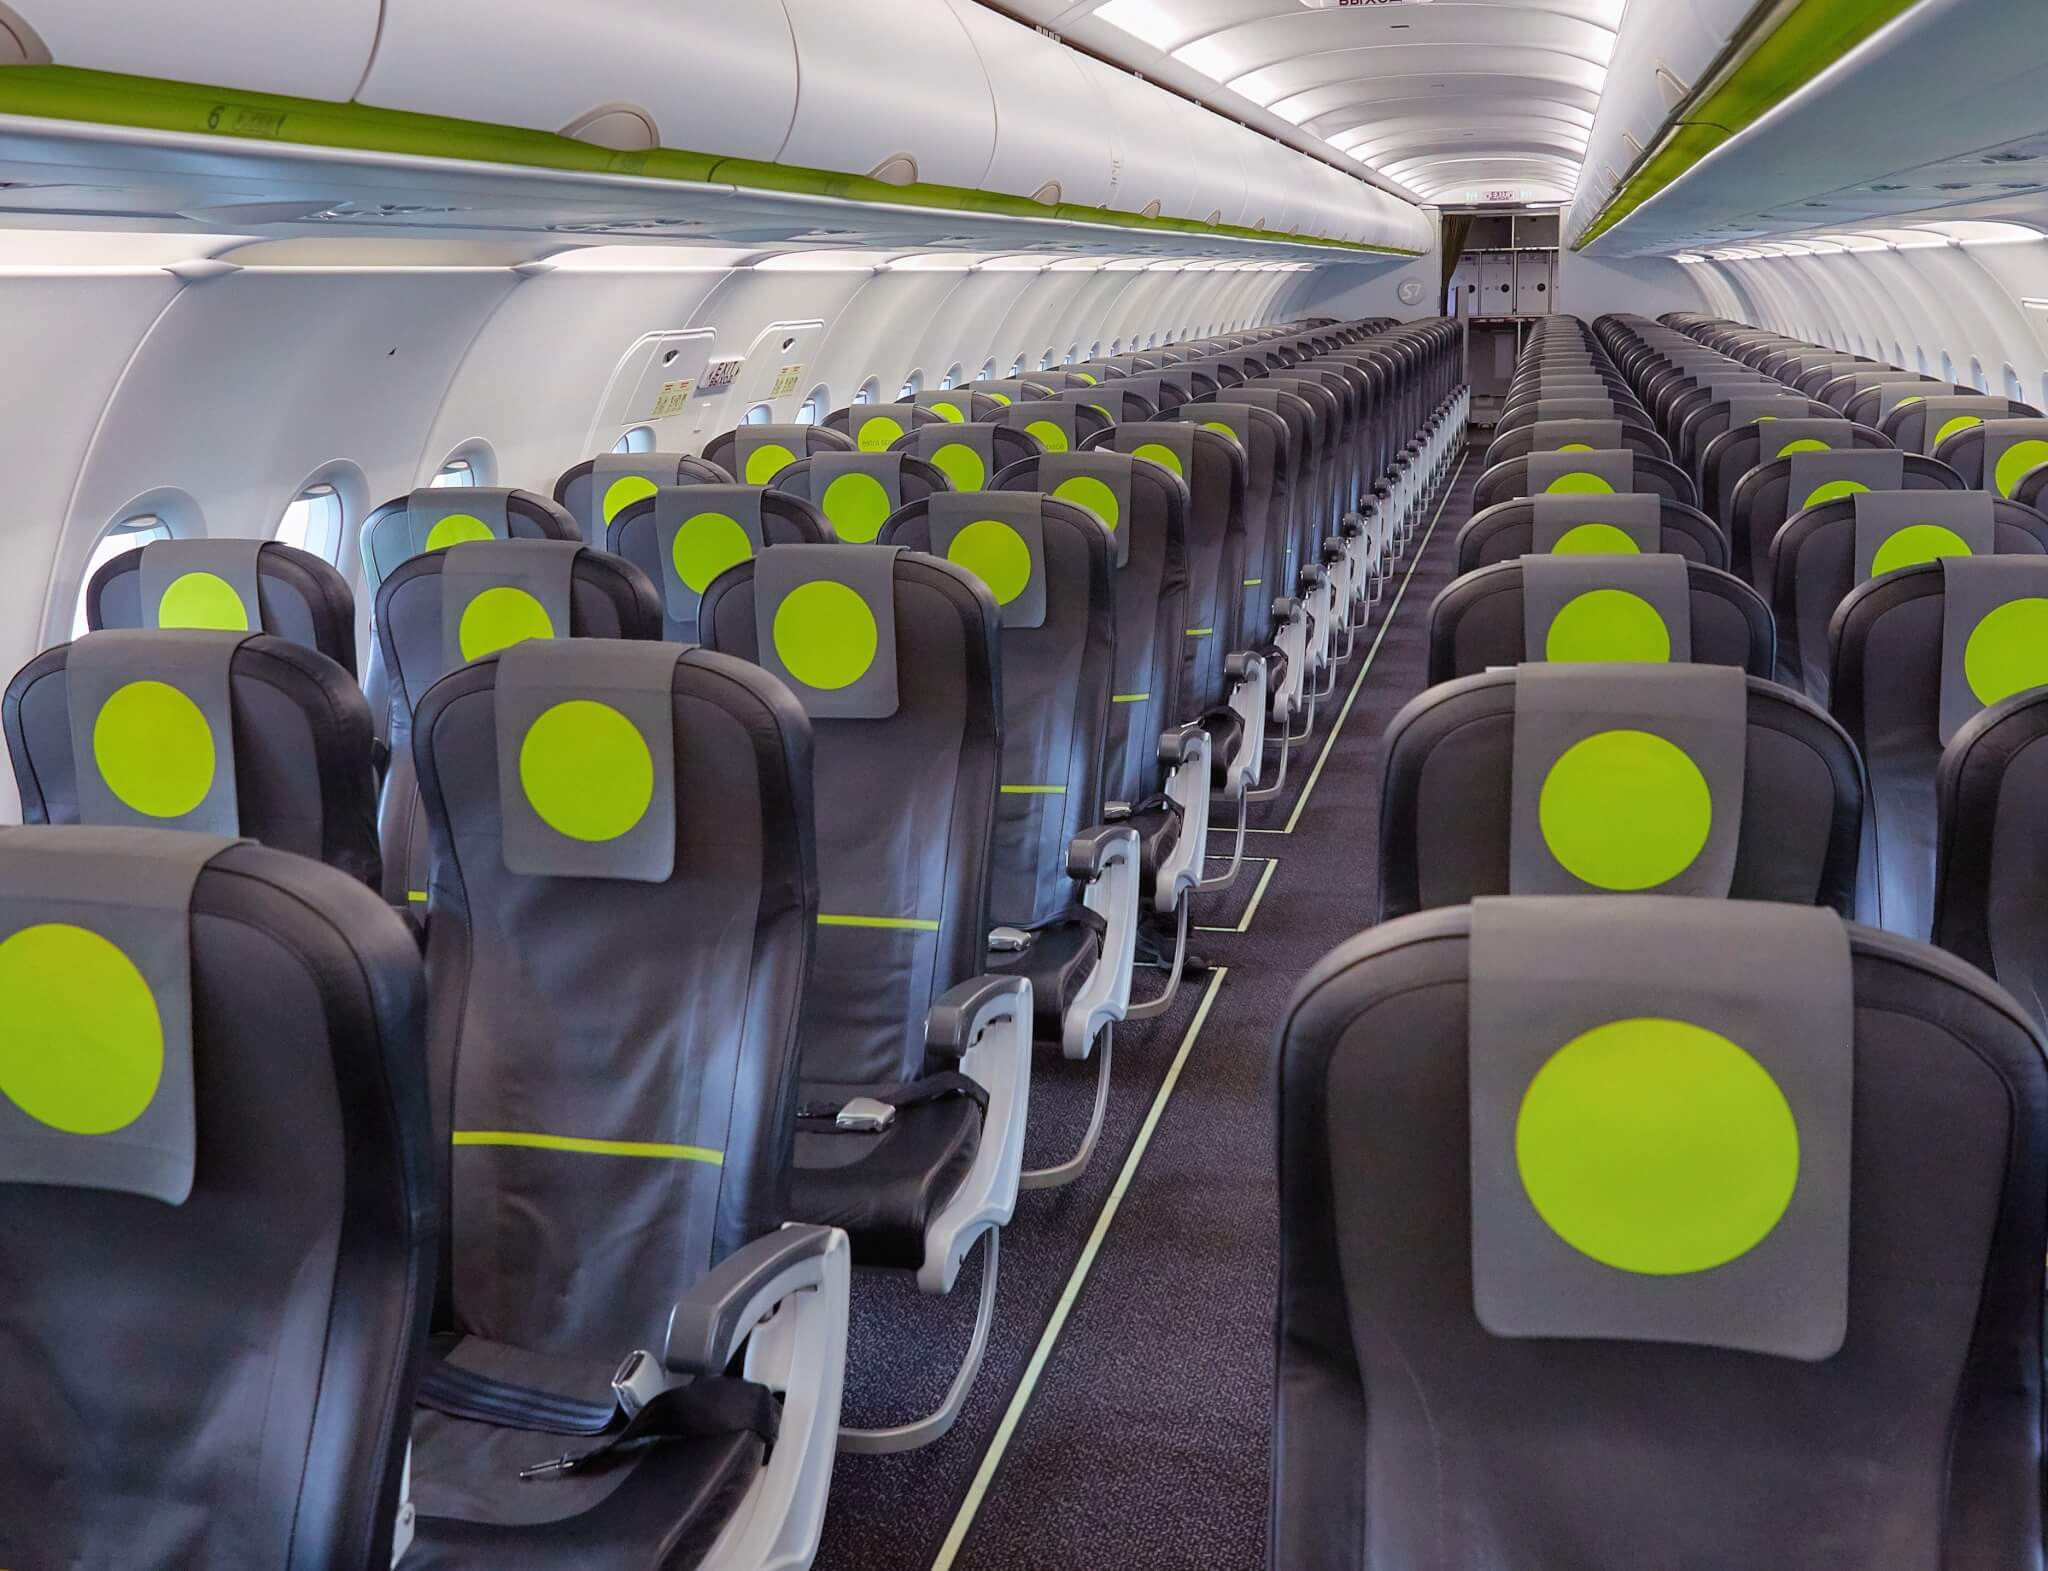 S7 Technics launches production of polyurethane foam cushions for aircraft seats